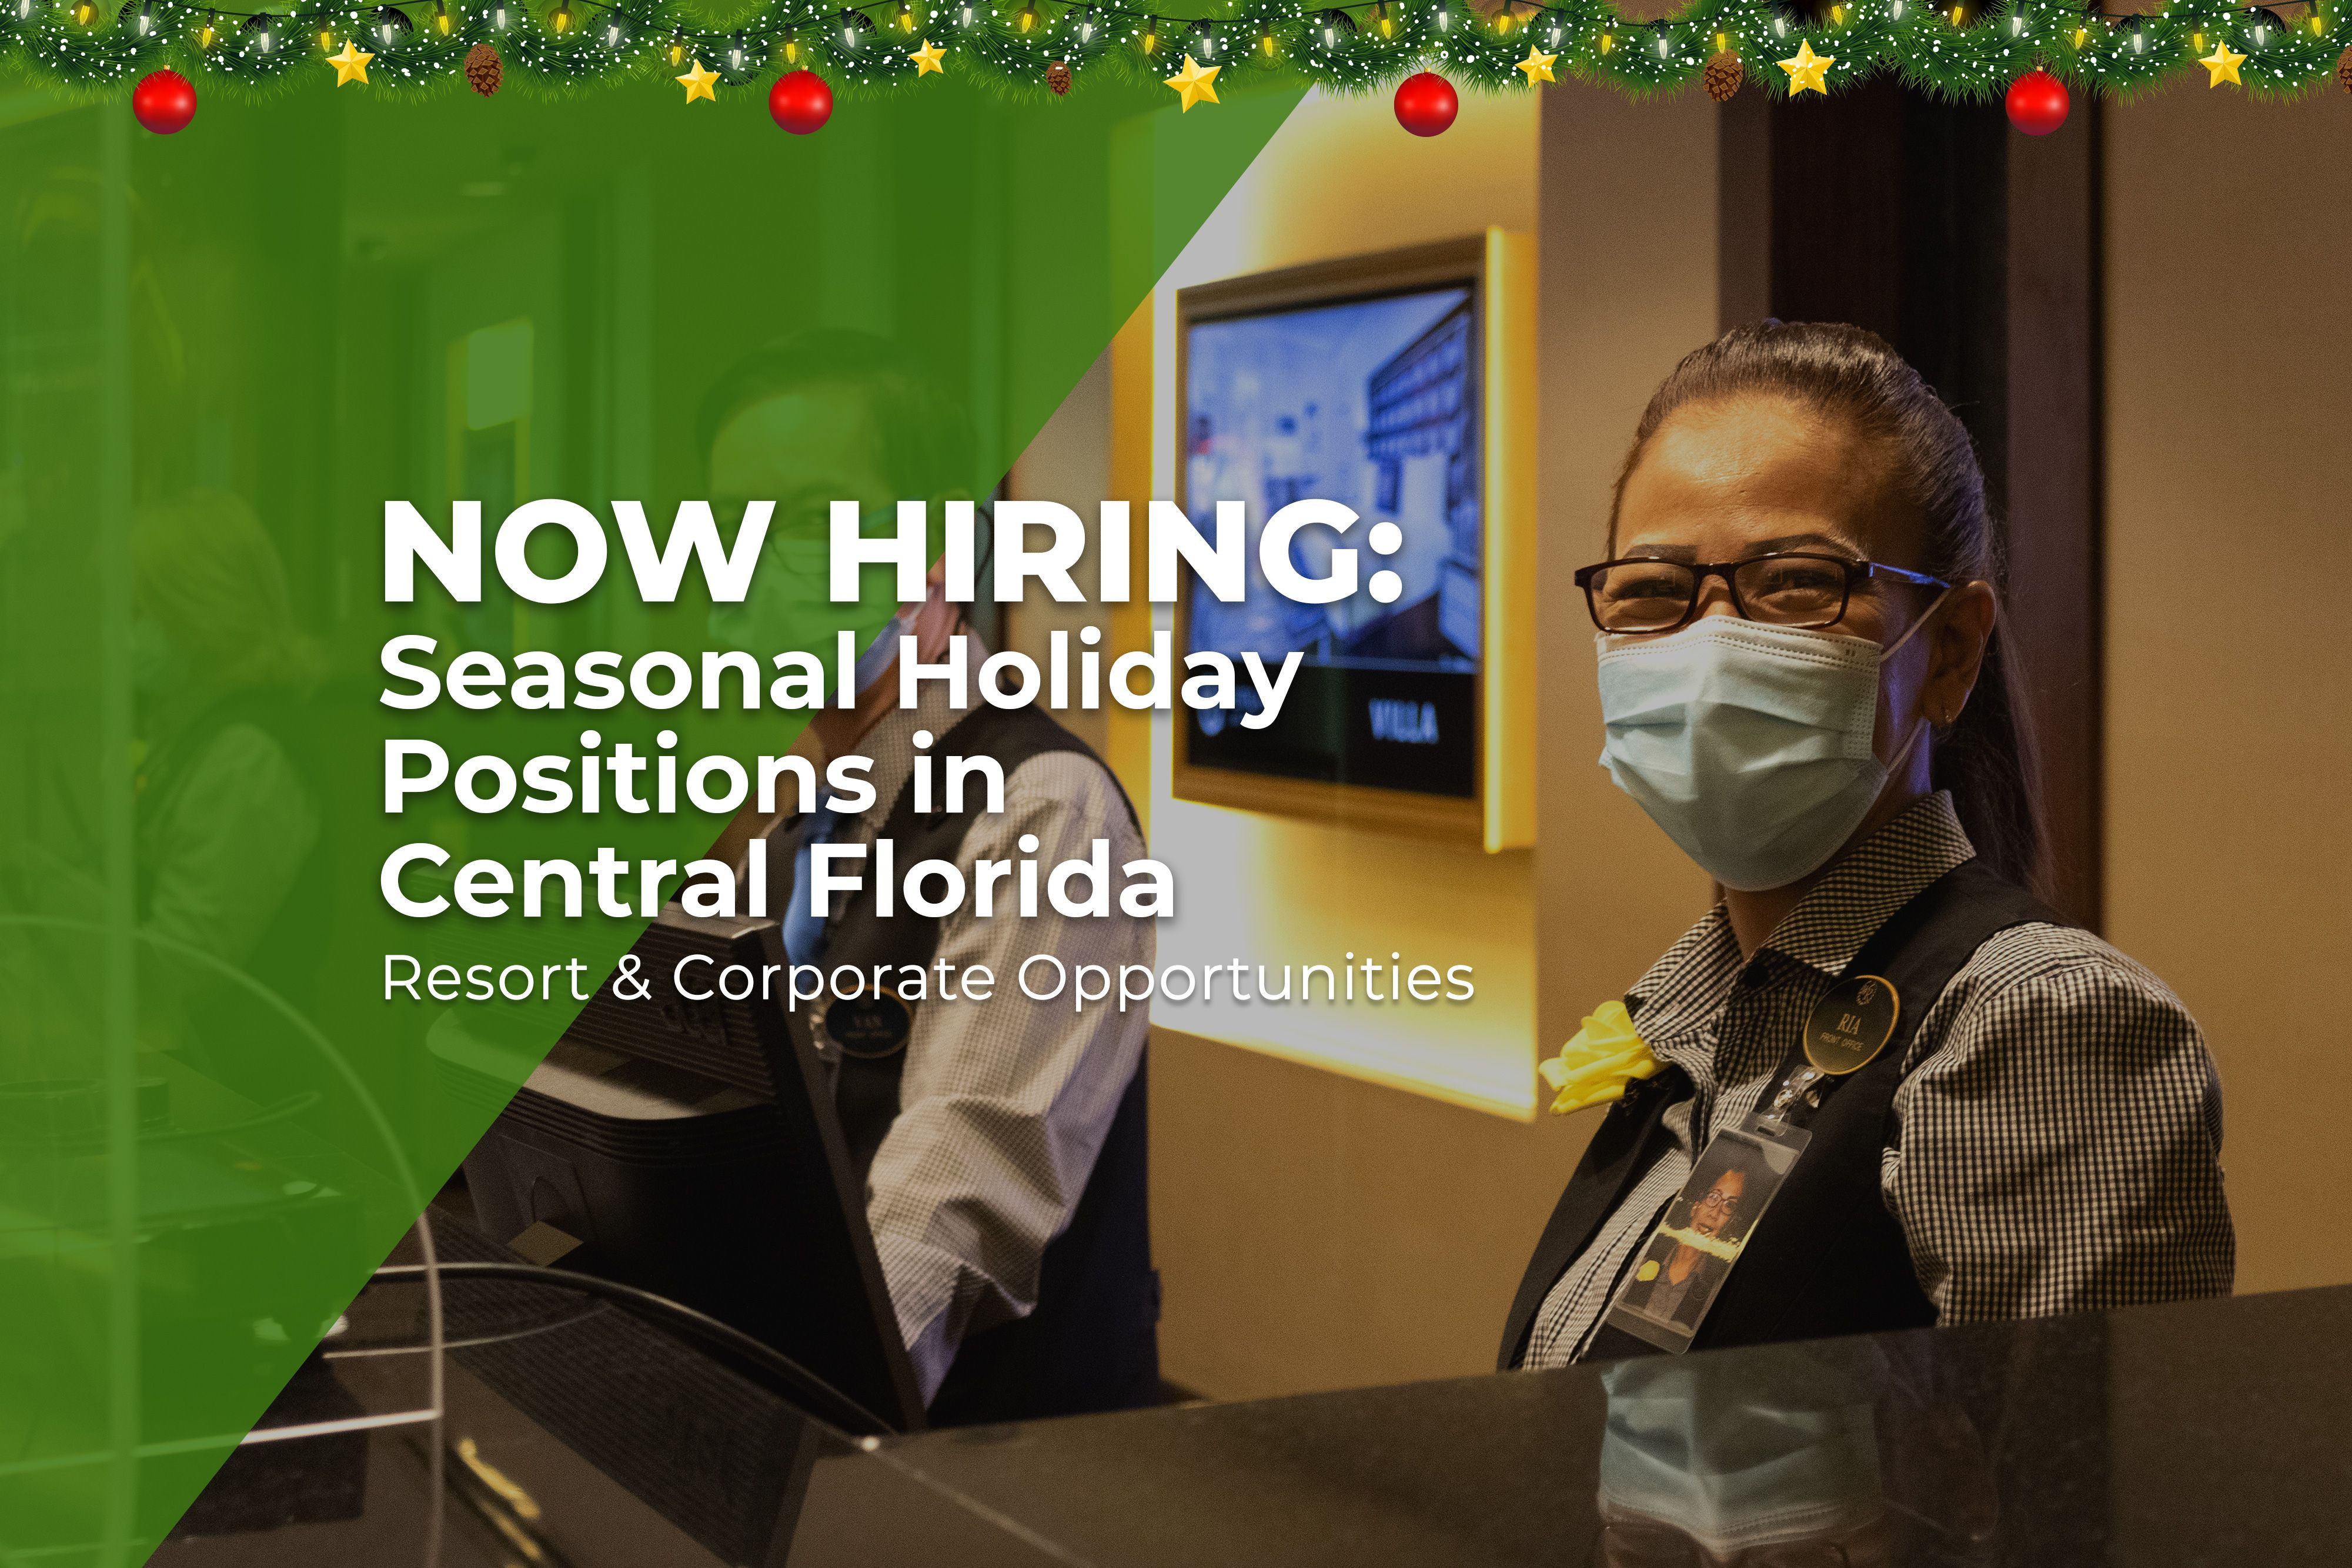 Westgate Resorts to Hire More Than 500 Seasonal Positions for the Upcoming Holiday Season-Westgate Resorts